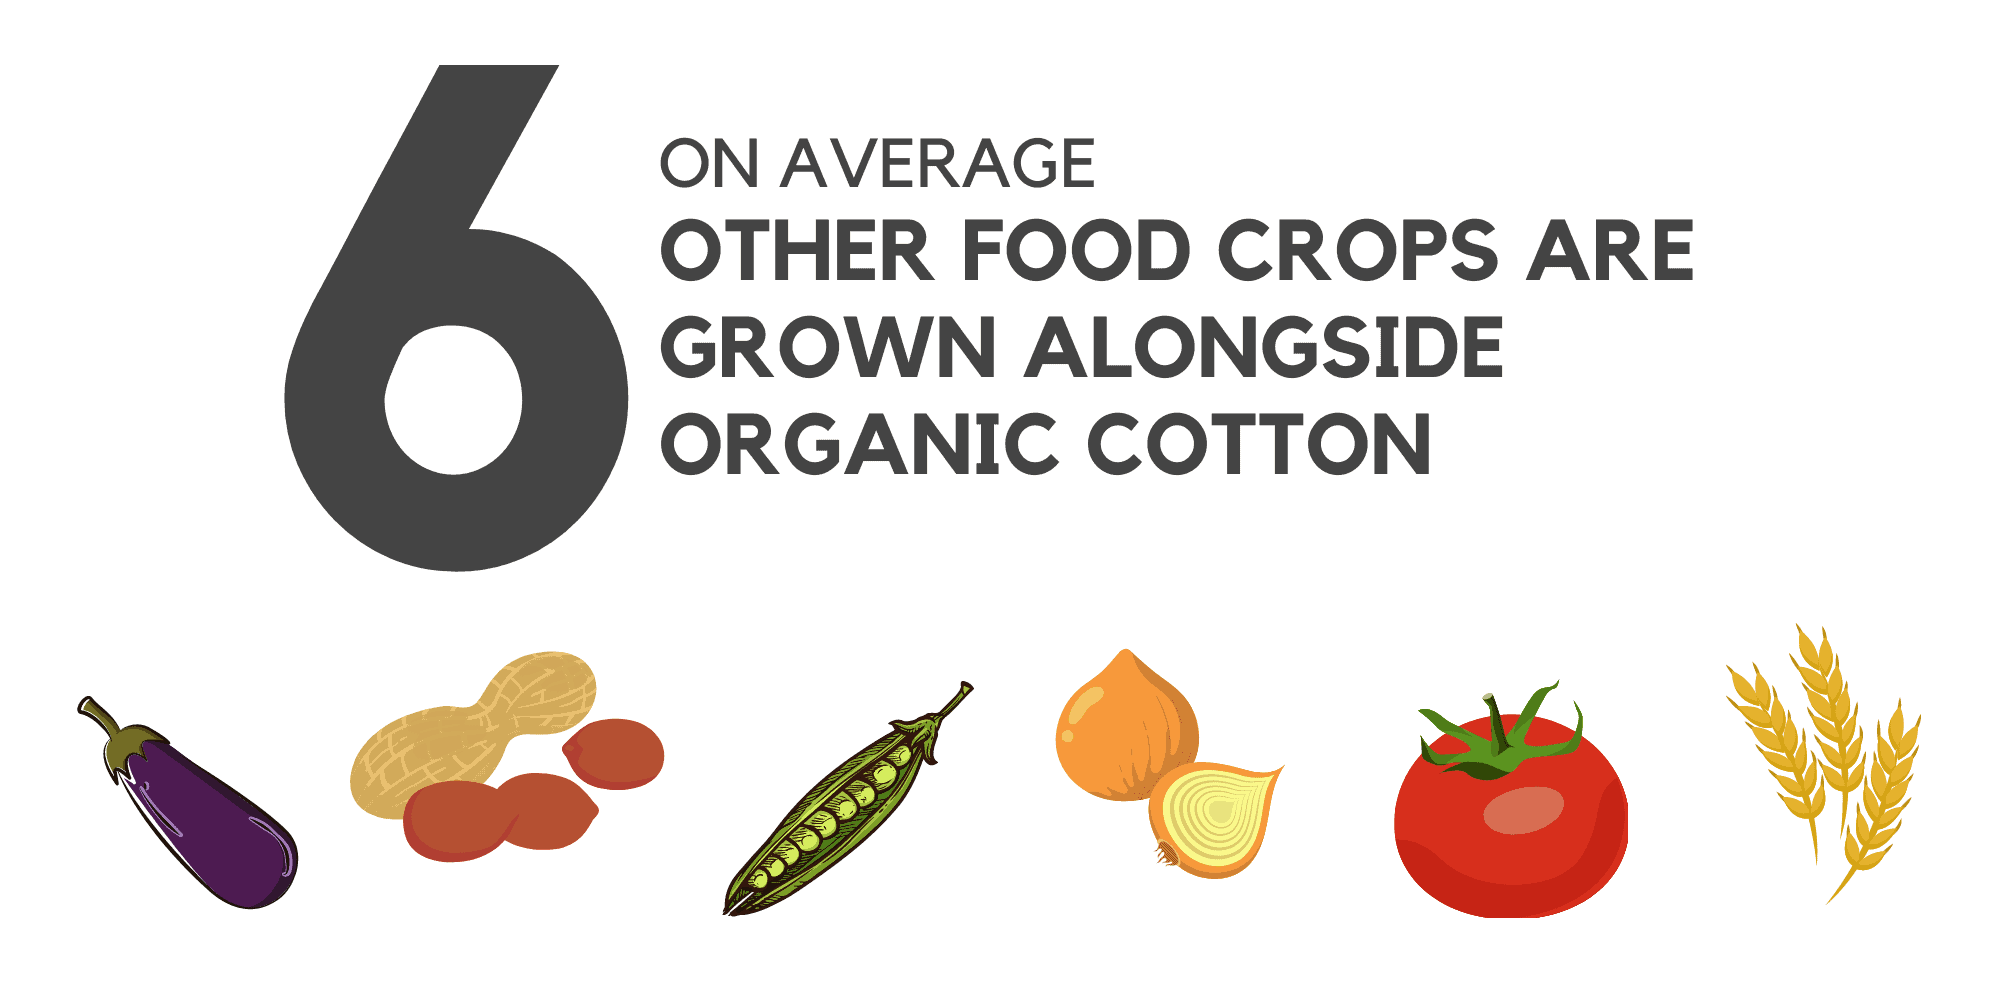 cotton farmers grow an average of 6 other food crops alongside the cotton